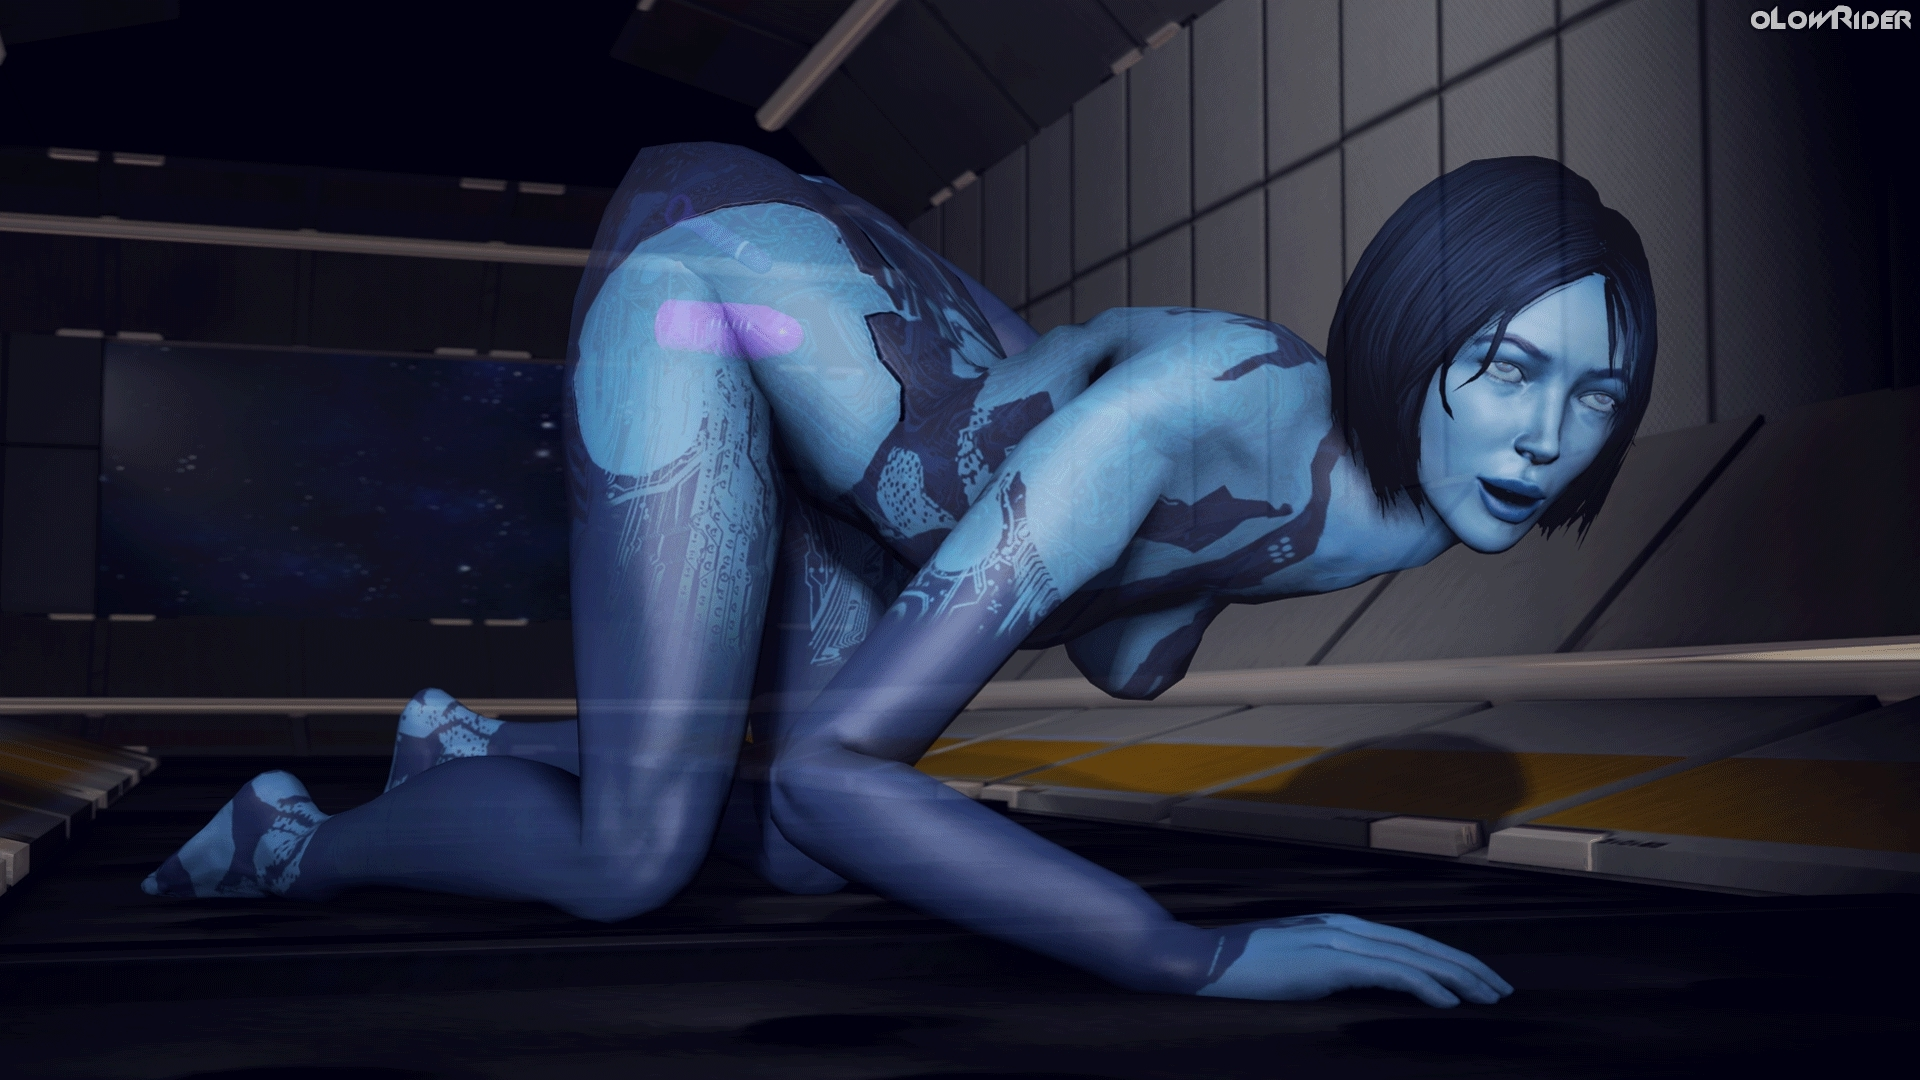 Halo 3 cortana sex videos softcore pic